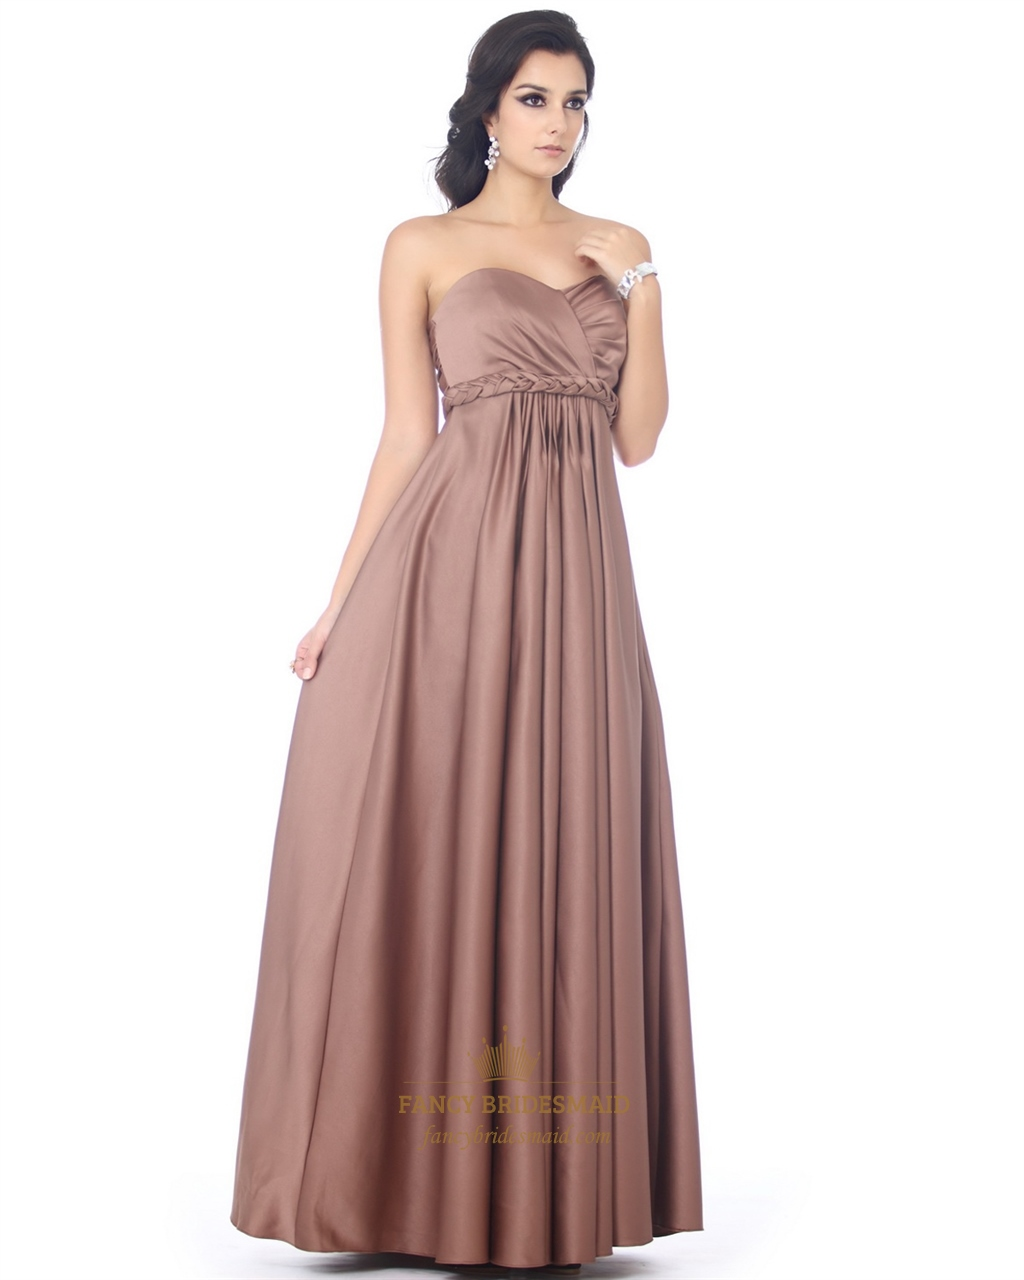 a67ffd2a0e7 Chocolate Brown Satin Sweetheart Bridesmaid Dress With Empire Waist SKU  -NW810